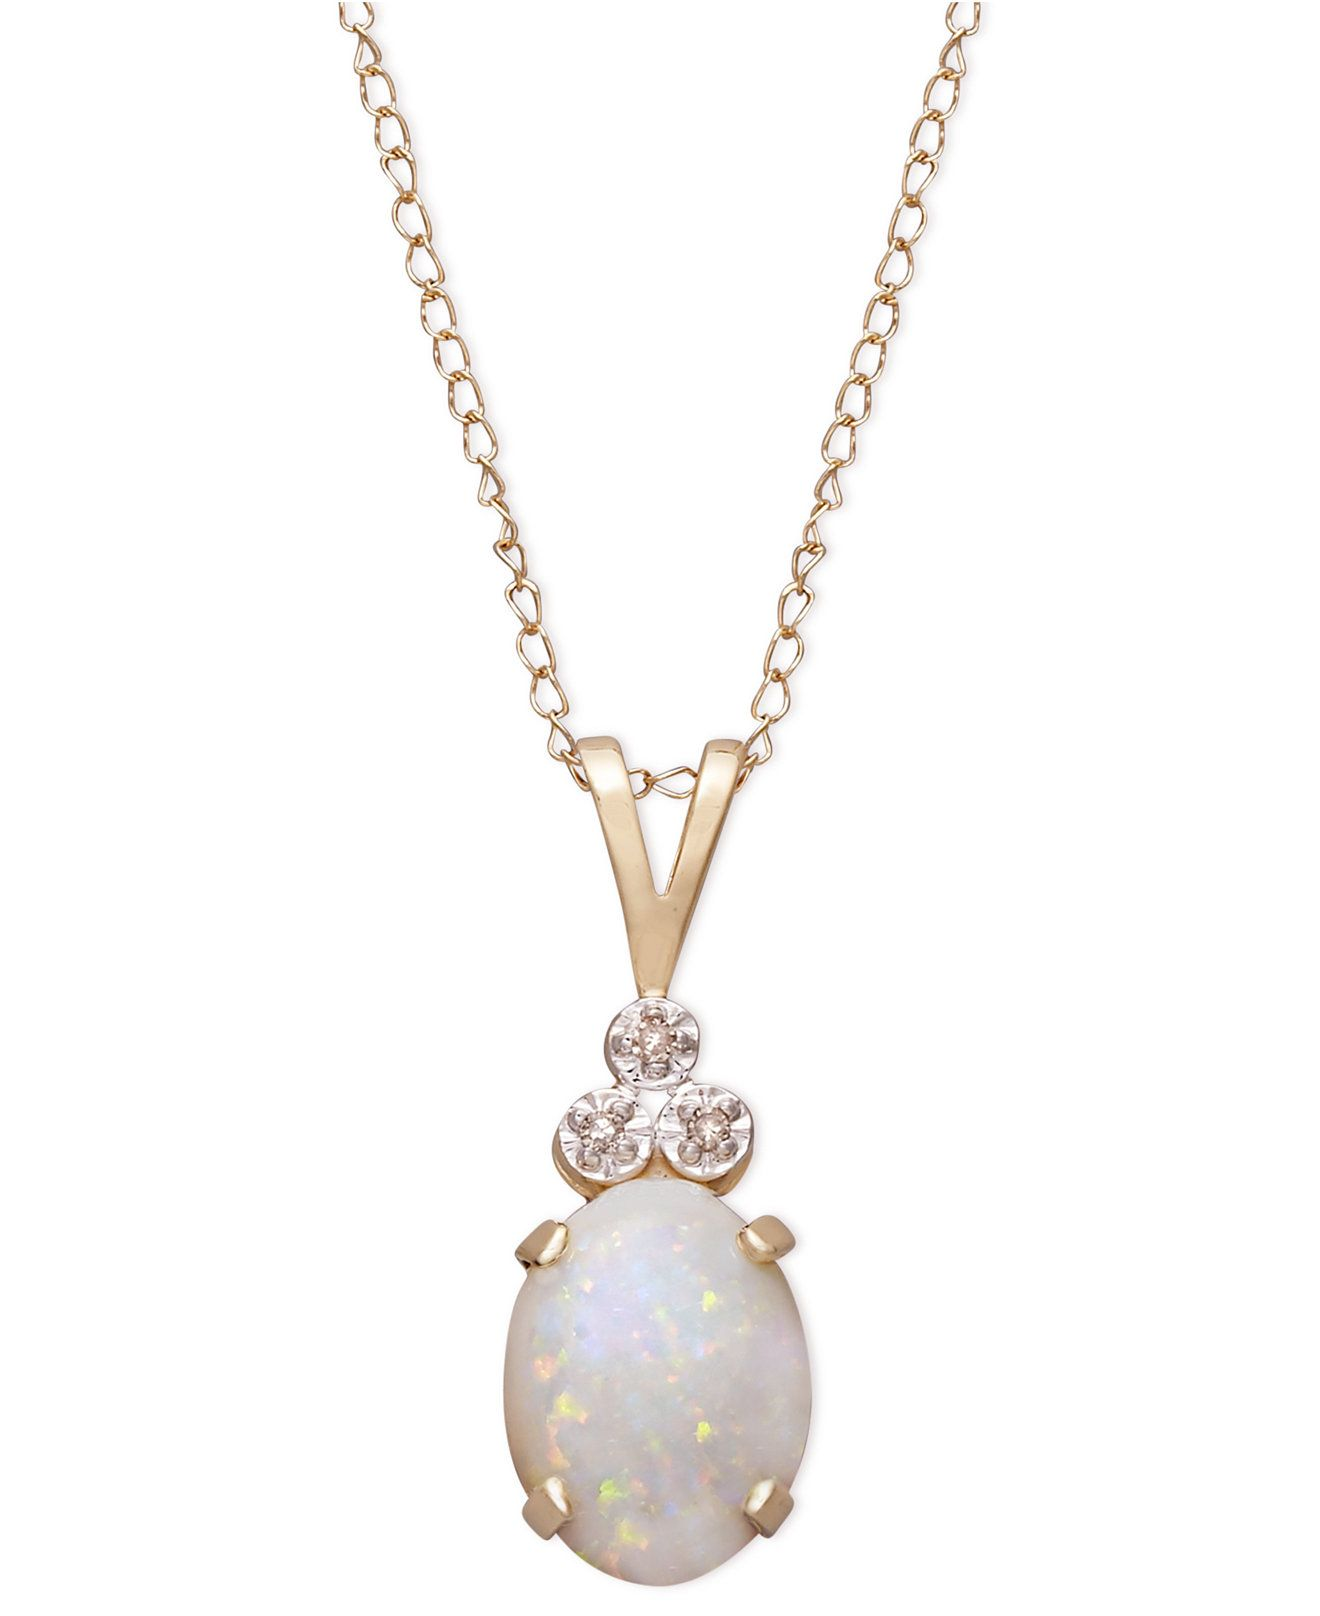 10k Gold Necklace, Opal (9/10 ct. t.w.) and Diamond Accent Tri Top Pendant - Necklaces - Jewelry & Watches - Macy's